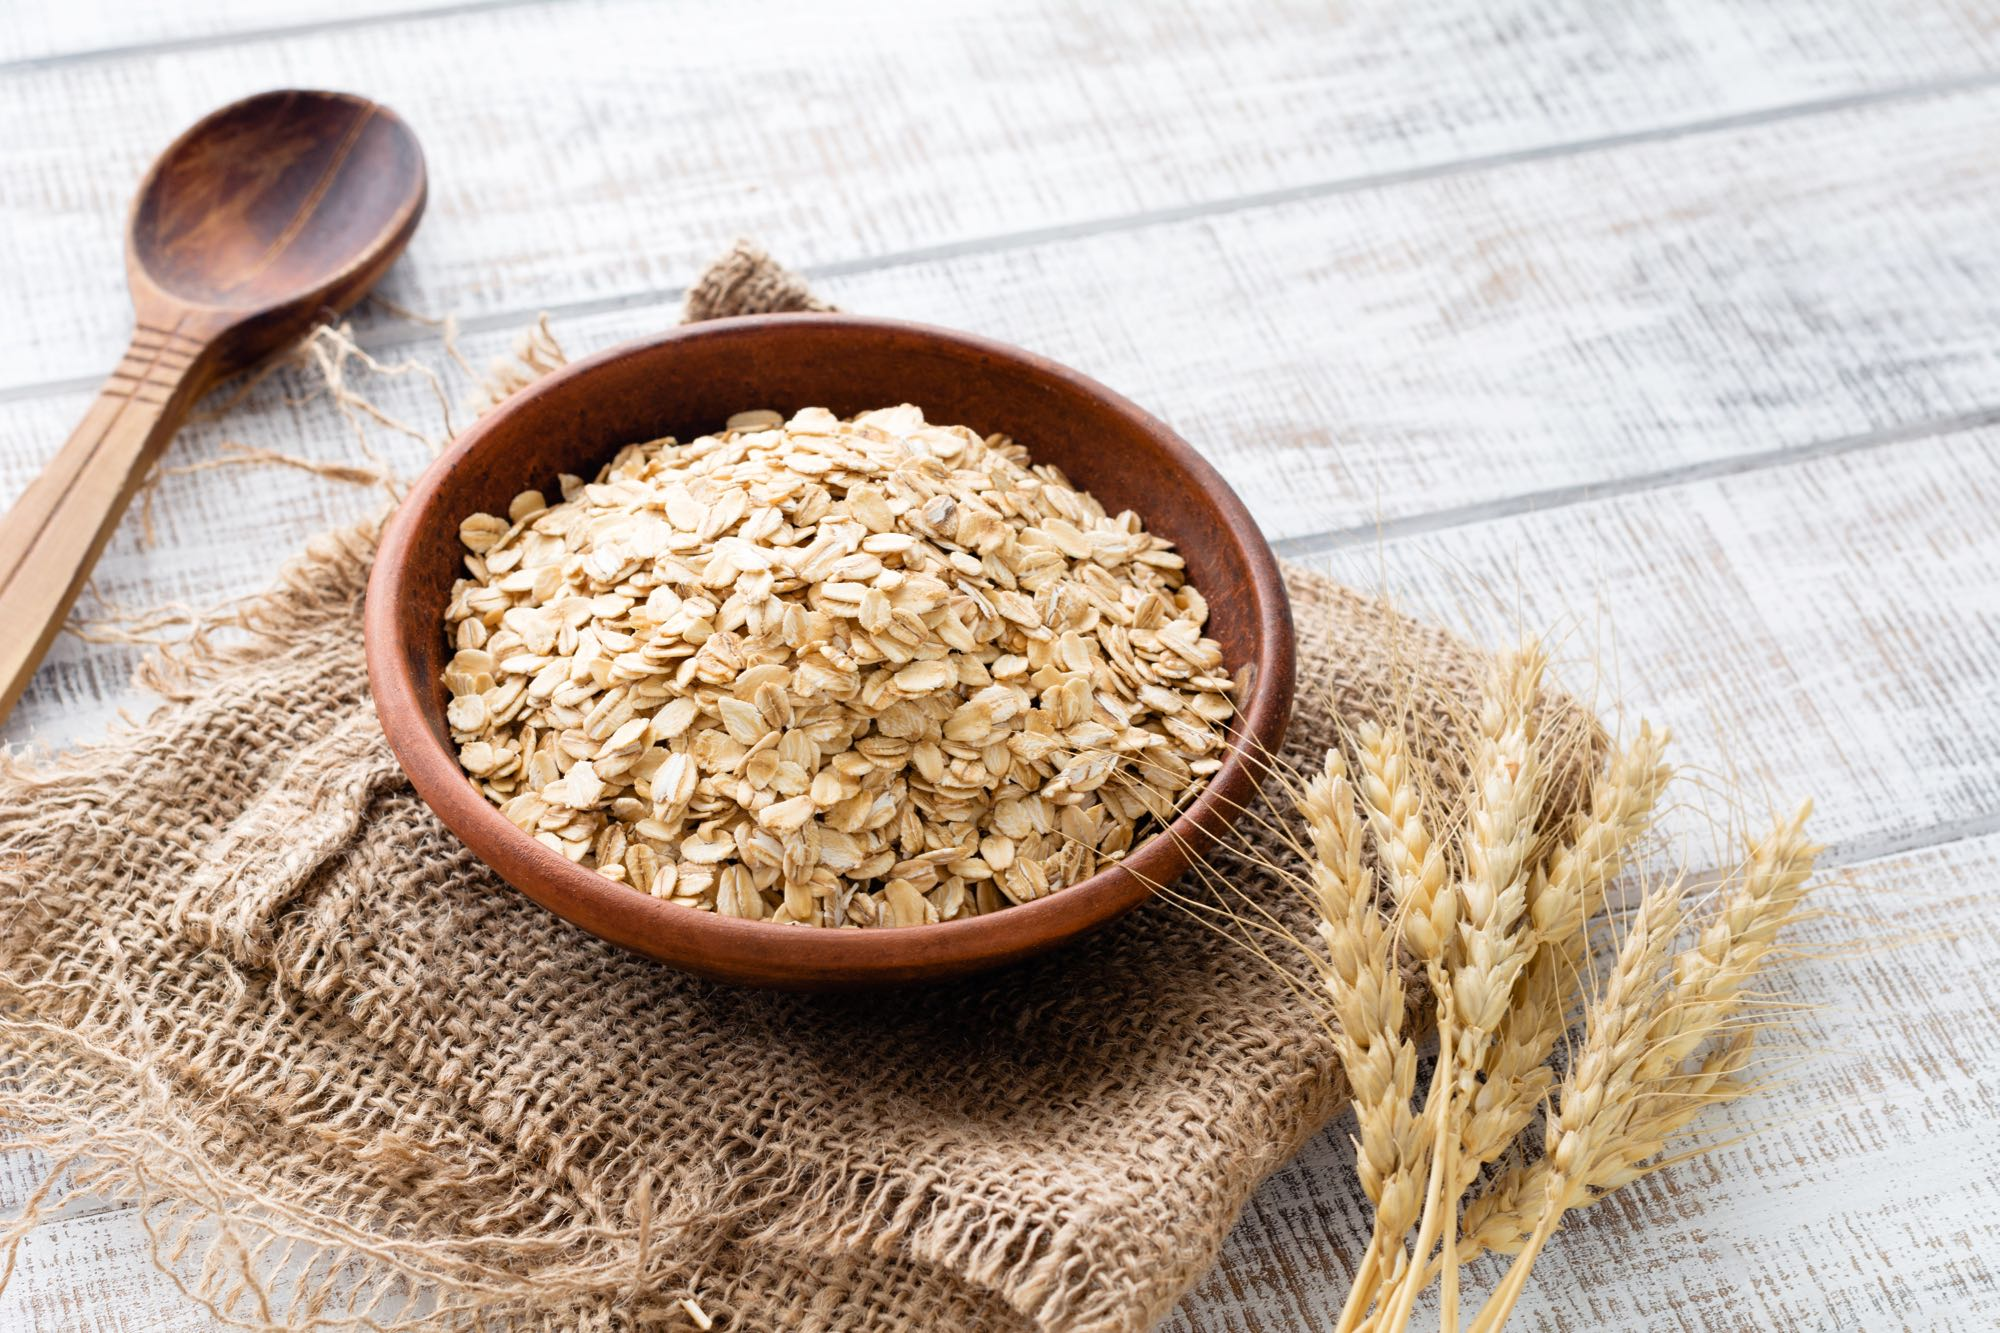 Bowl of oats on a wooden table